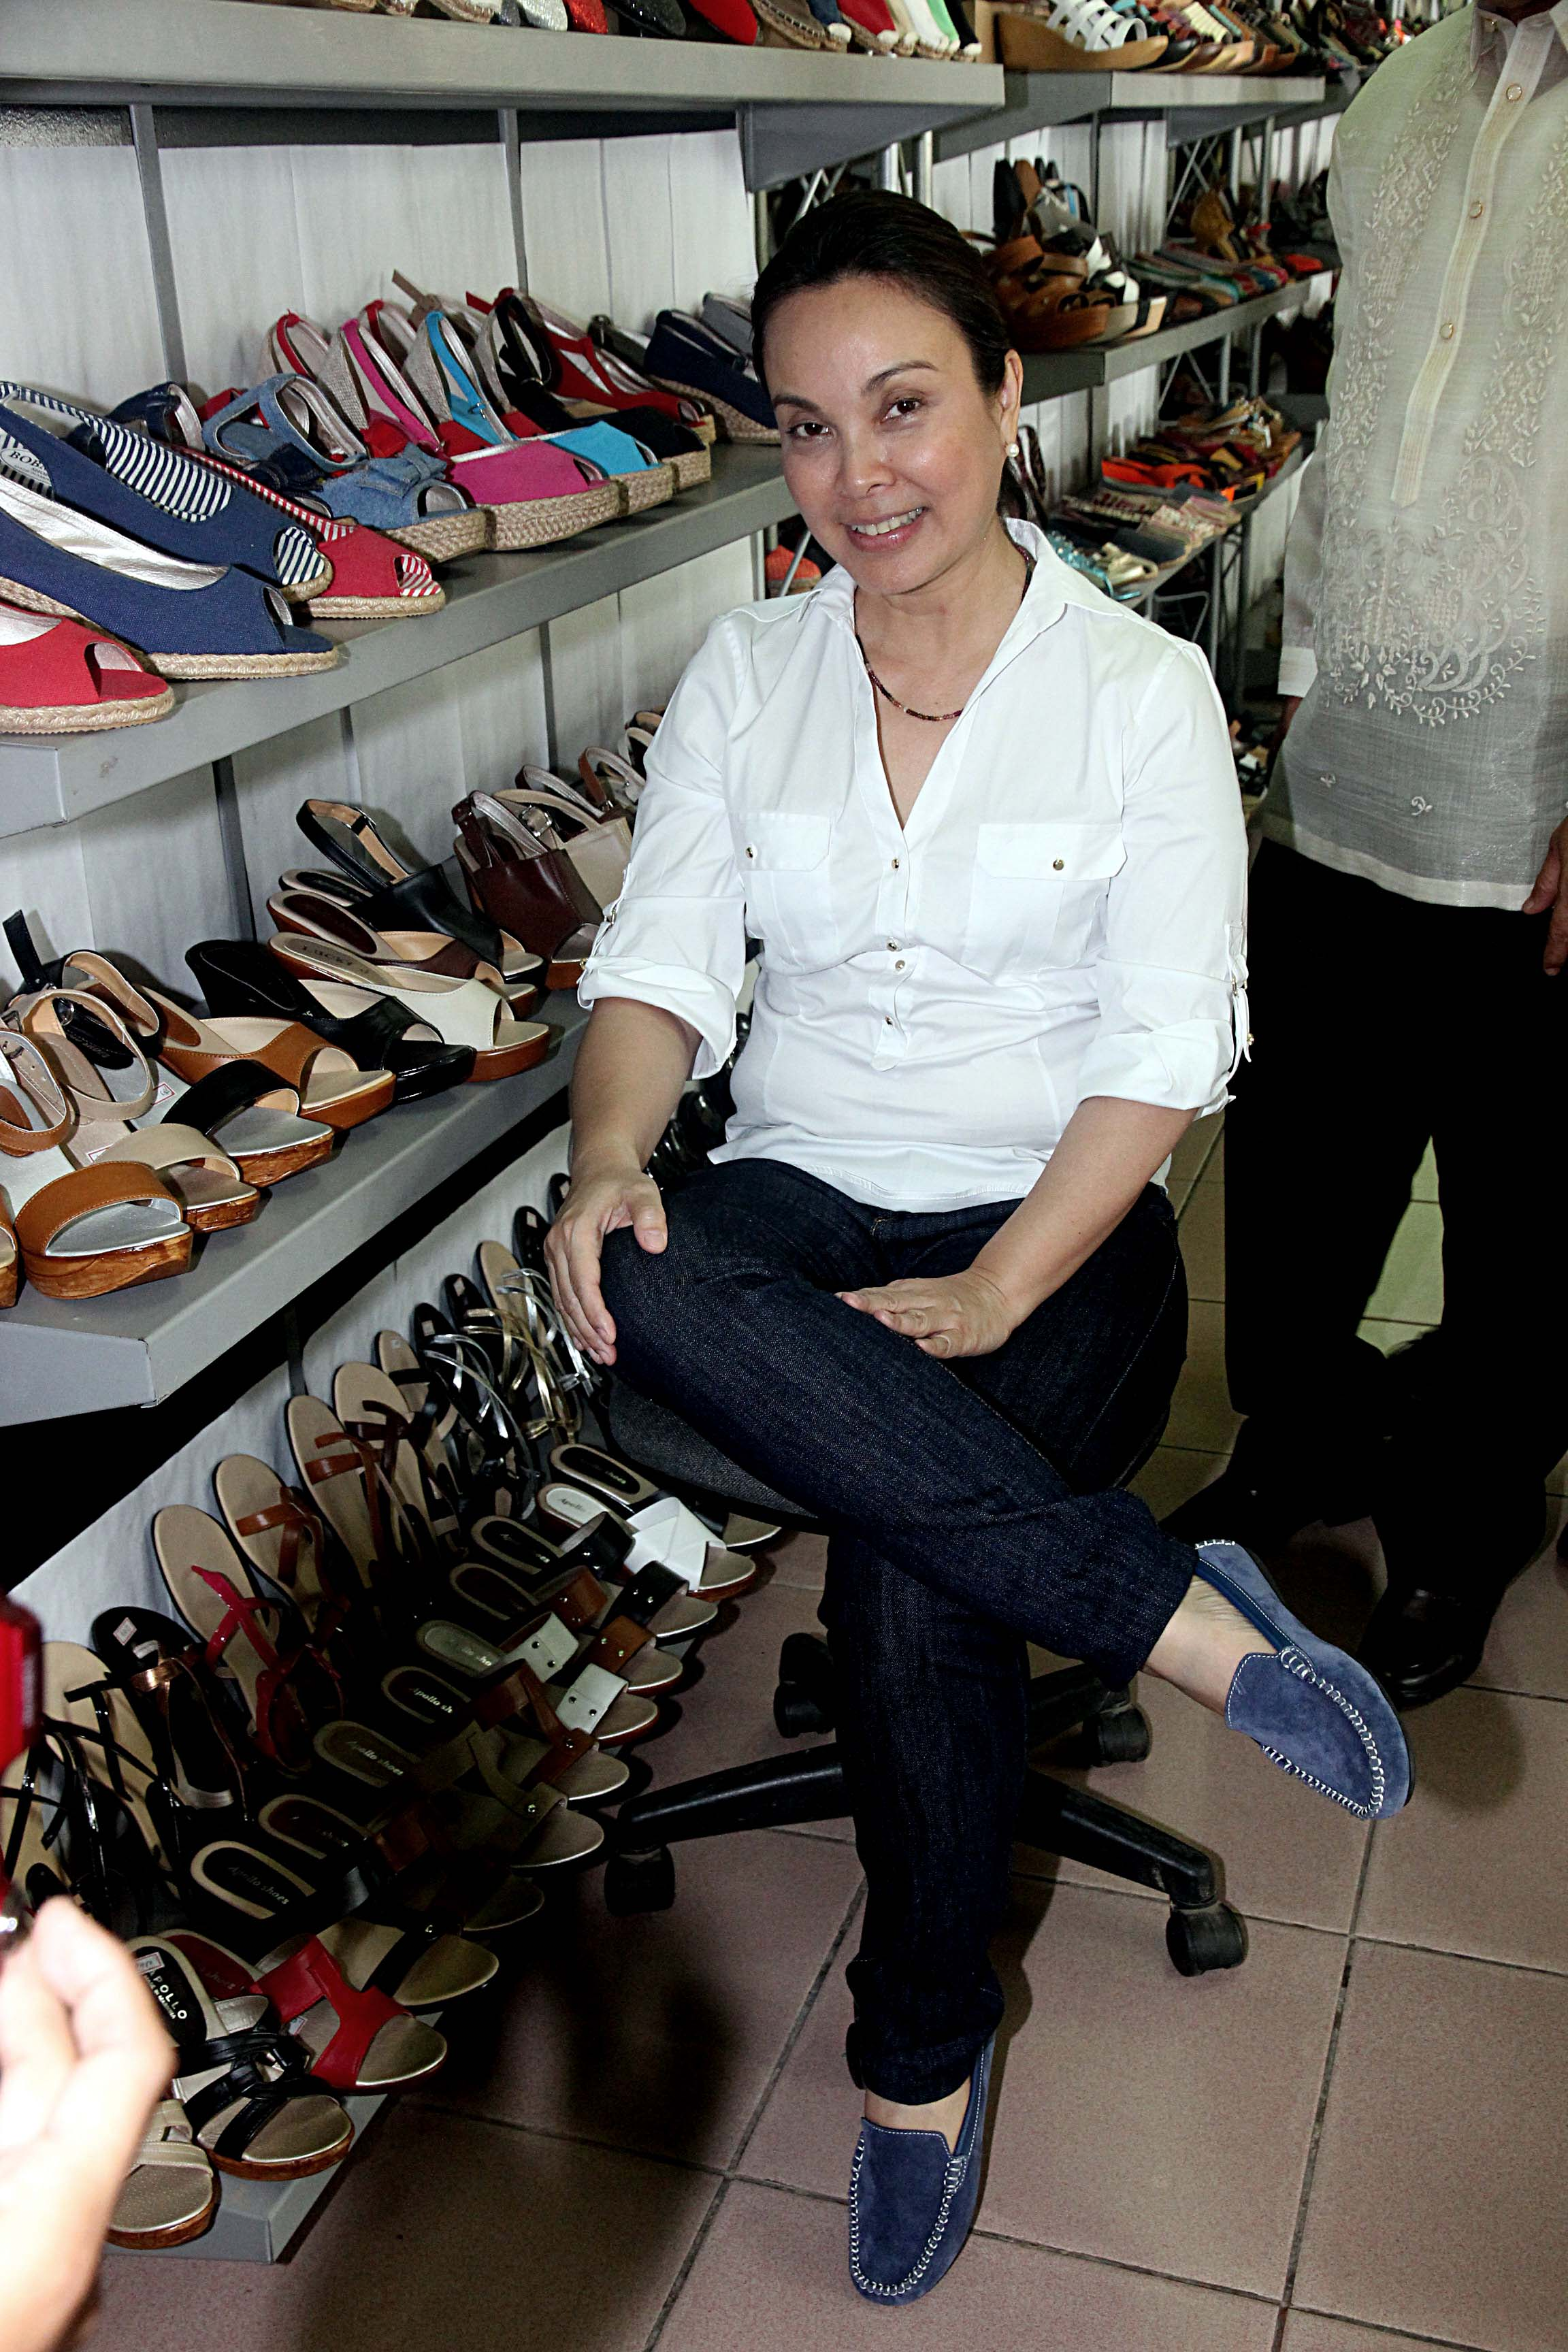 marikina shoe industry Industriya serves international cuisine western, filipino, asian and japanese cuisine is string tied to history of the cheng family's heritage particularly mrs concepcion cheng, one of the forefront founders of the shoe industry in marikina.